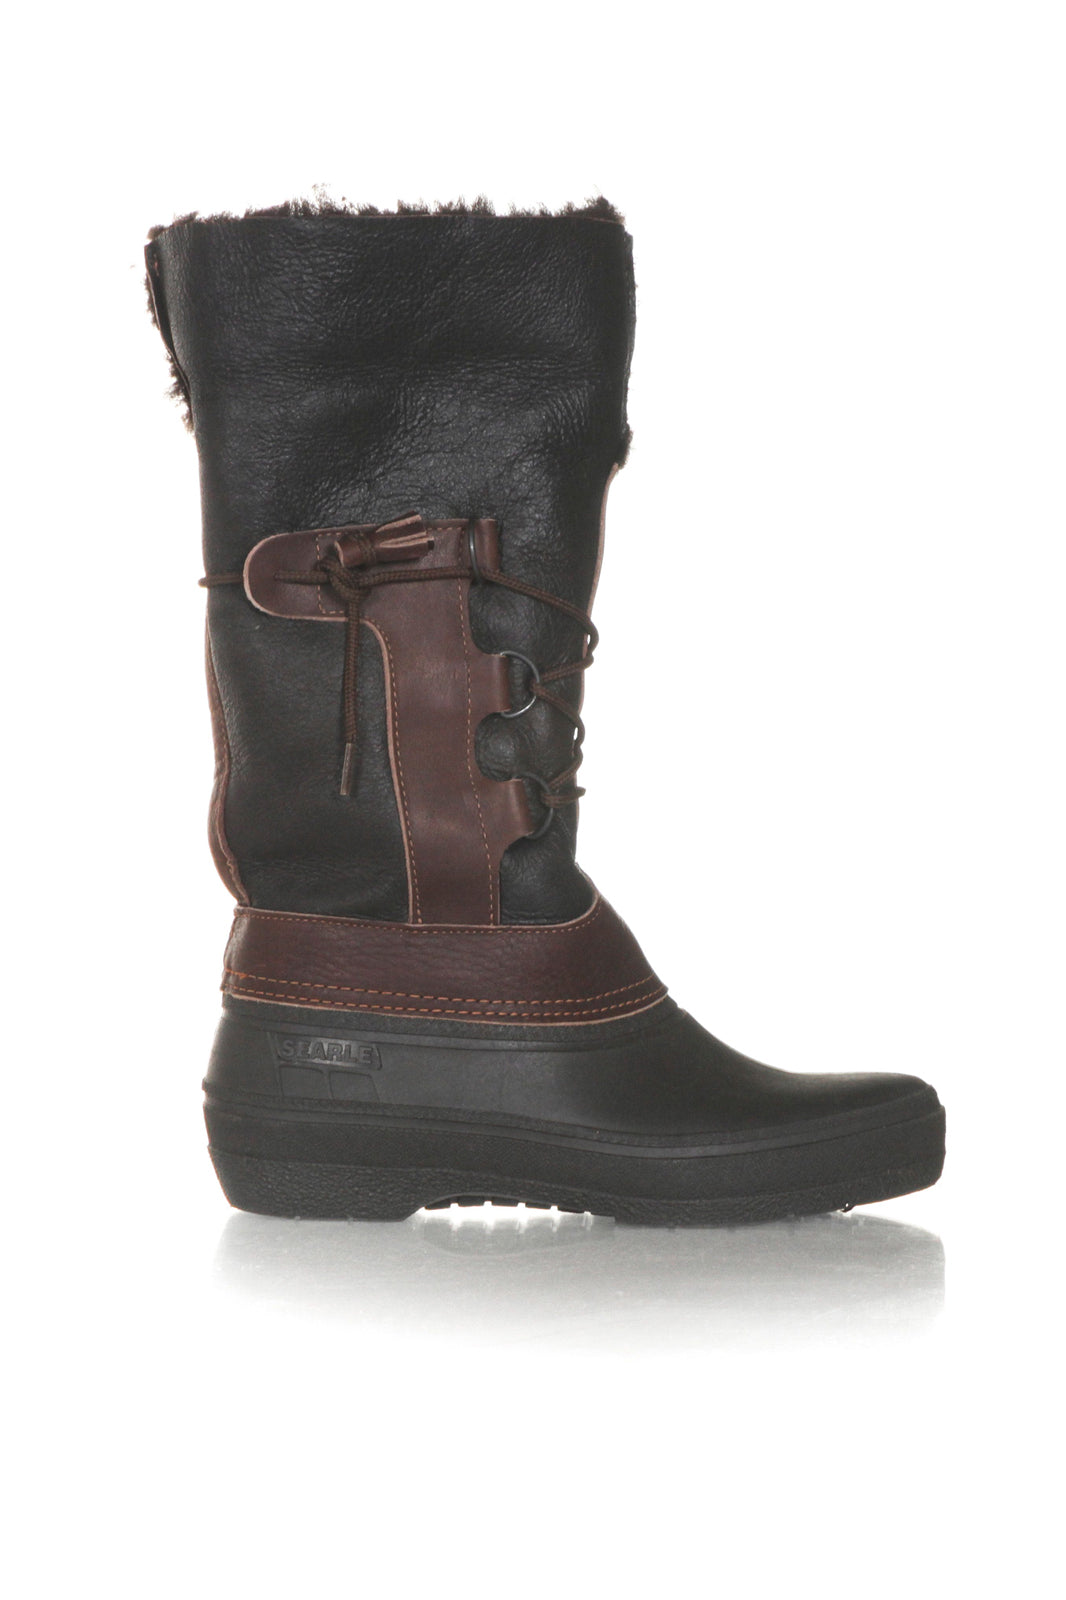 SEARLE Shearling Leather Winter Boots